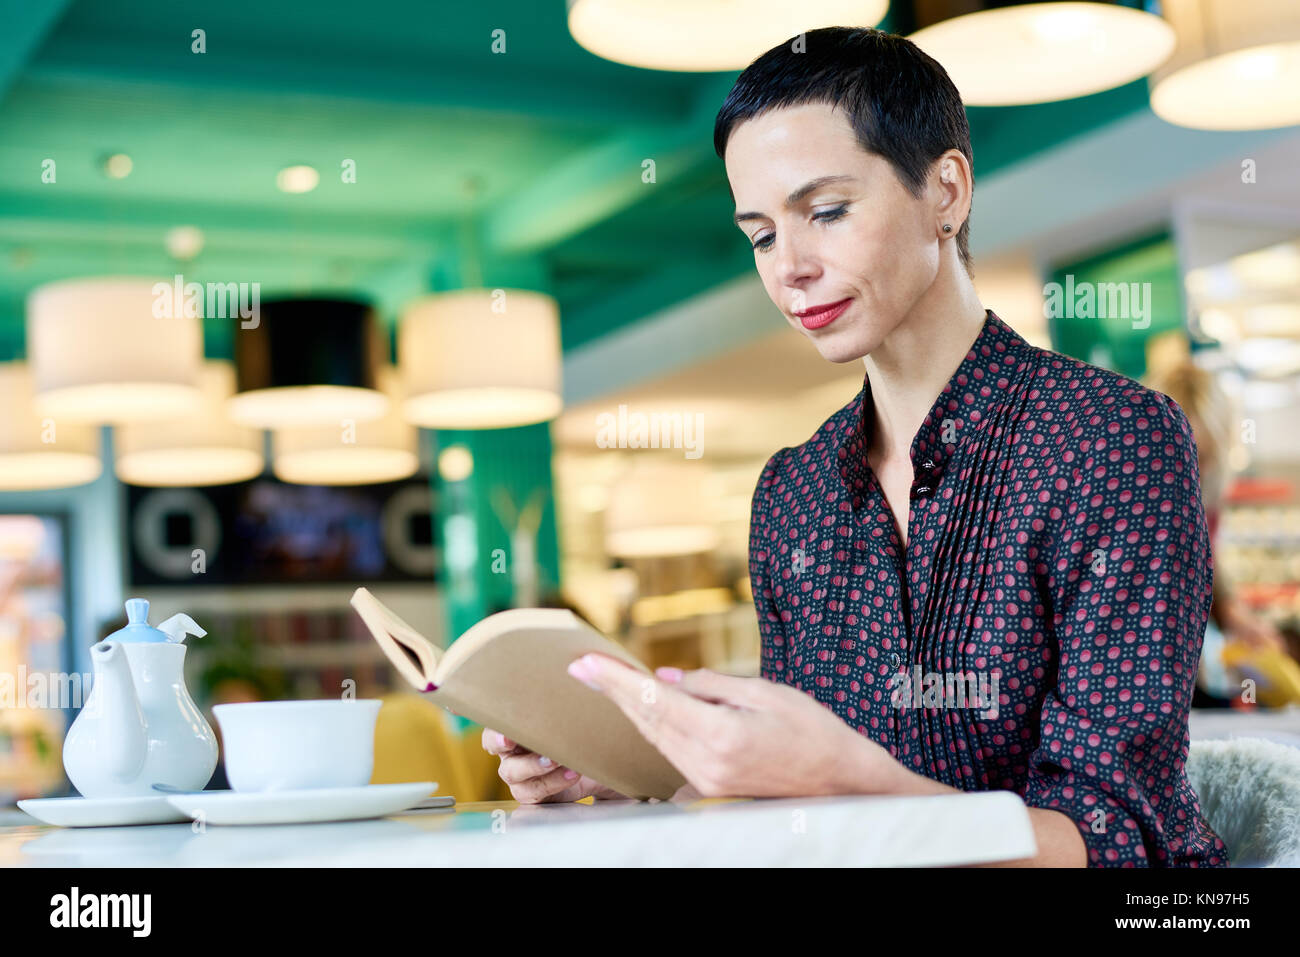 Elegant Woman Reading Book in Cafe - Stock Image